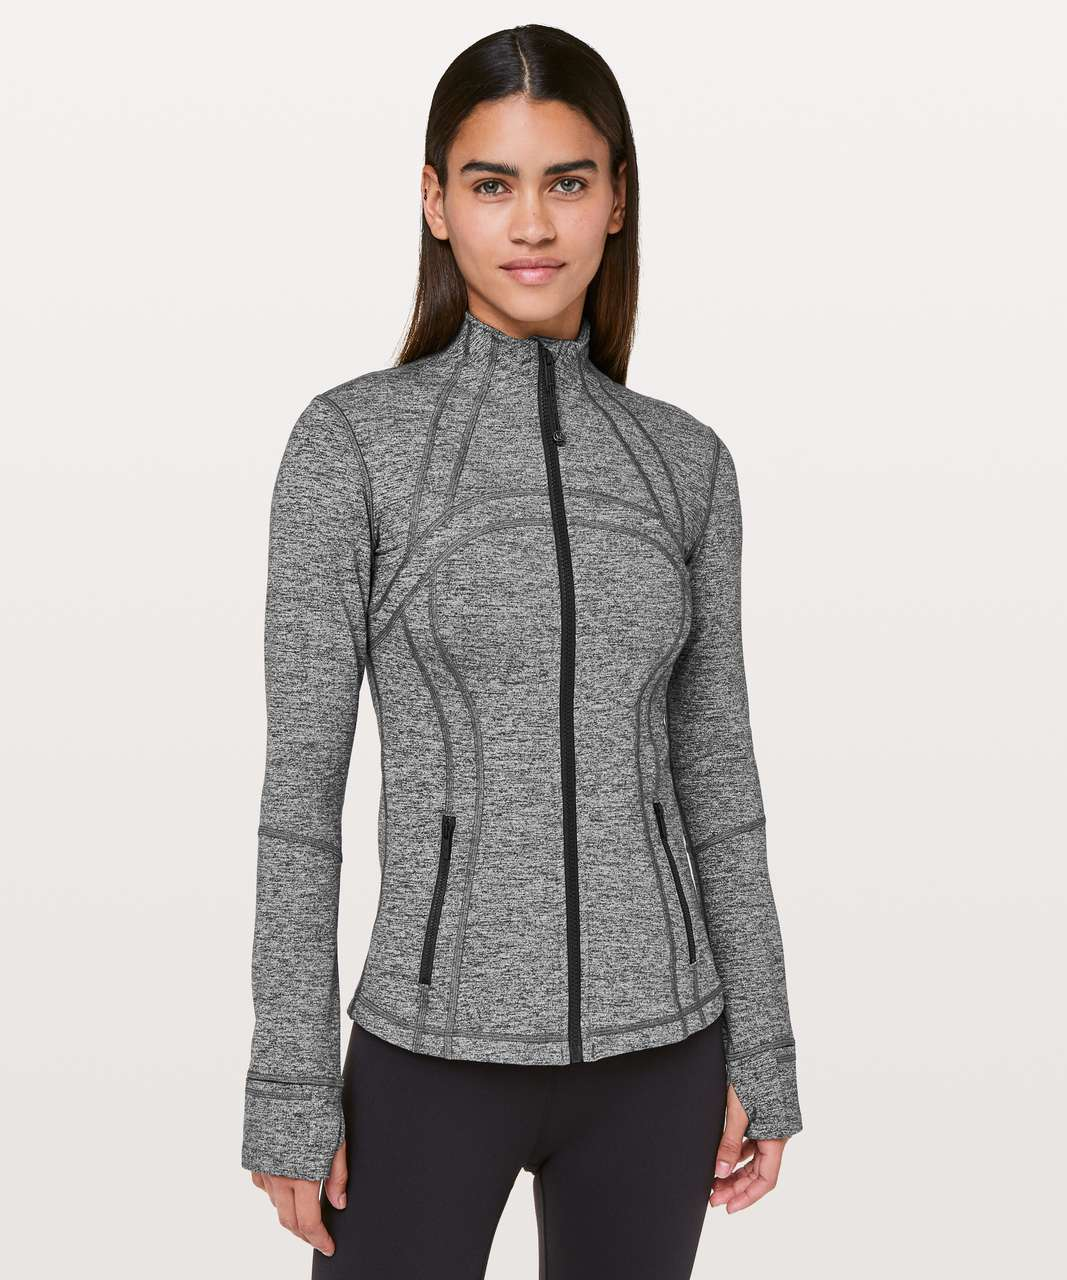 Lululemon Define Jacket - Heathered Black